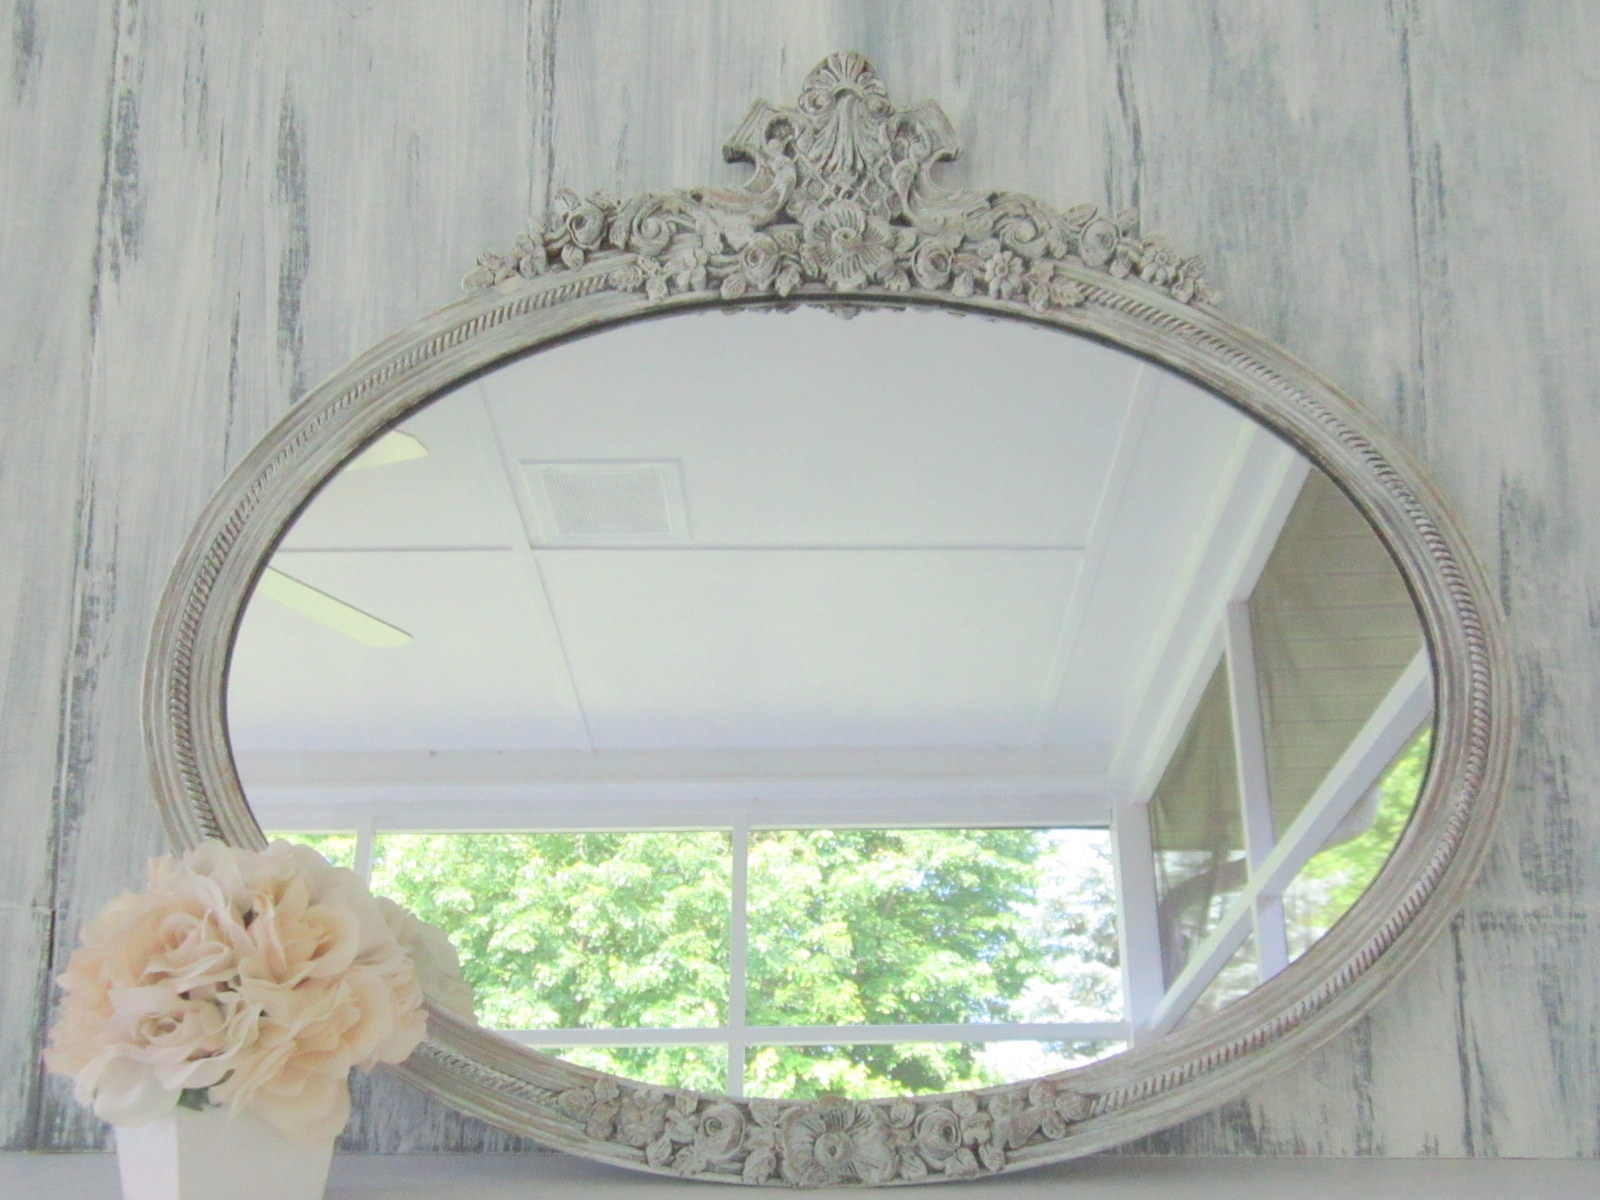 Revived Vintage Chalkboards Antique Mirrors For Salemany In Old Mirrors For Sale (View 4 of 15)